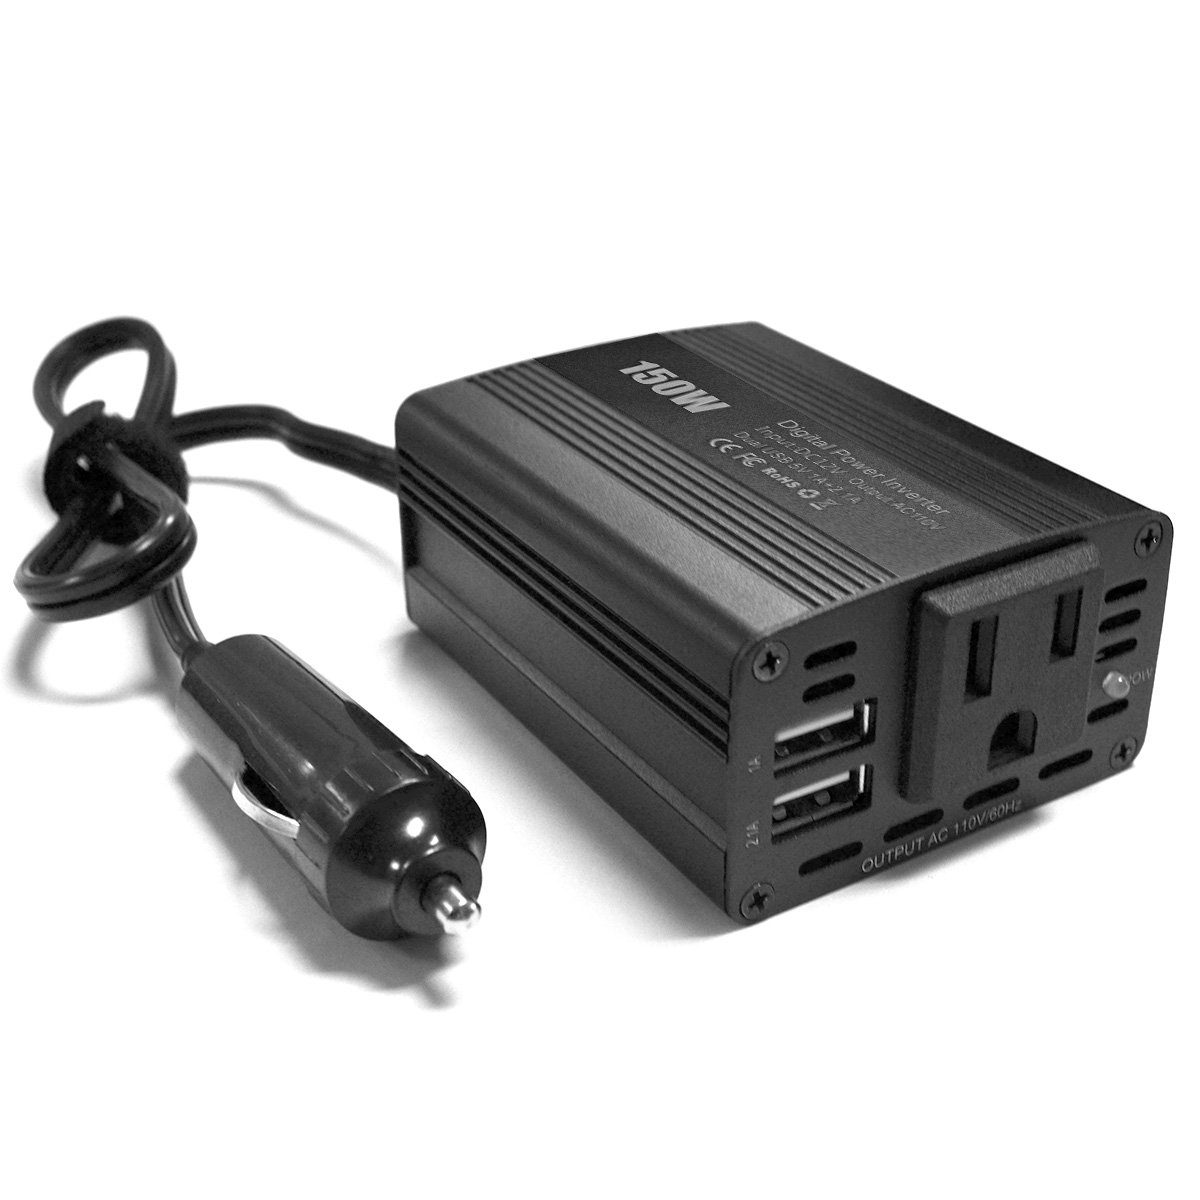 PowerEZ150W Car Power Inverter Solar Inverter DC 12V to 110V AC Converter with 3.1A Dual USB Charger